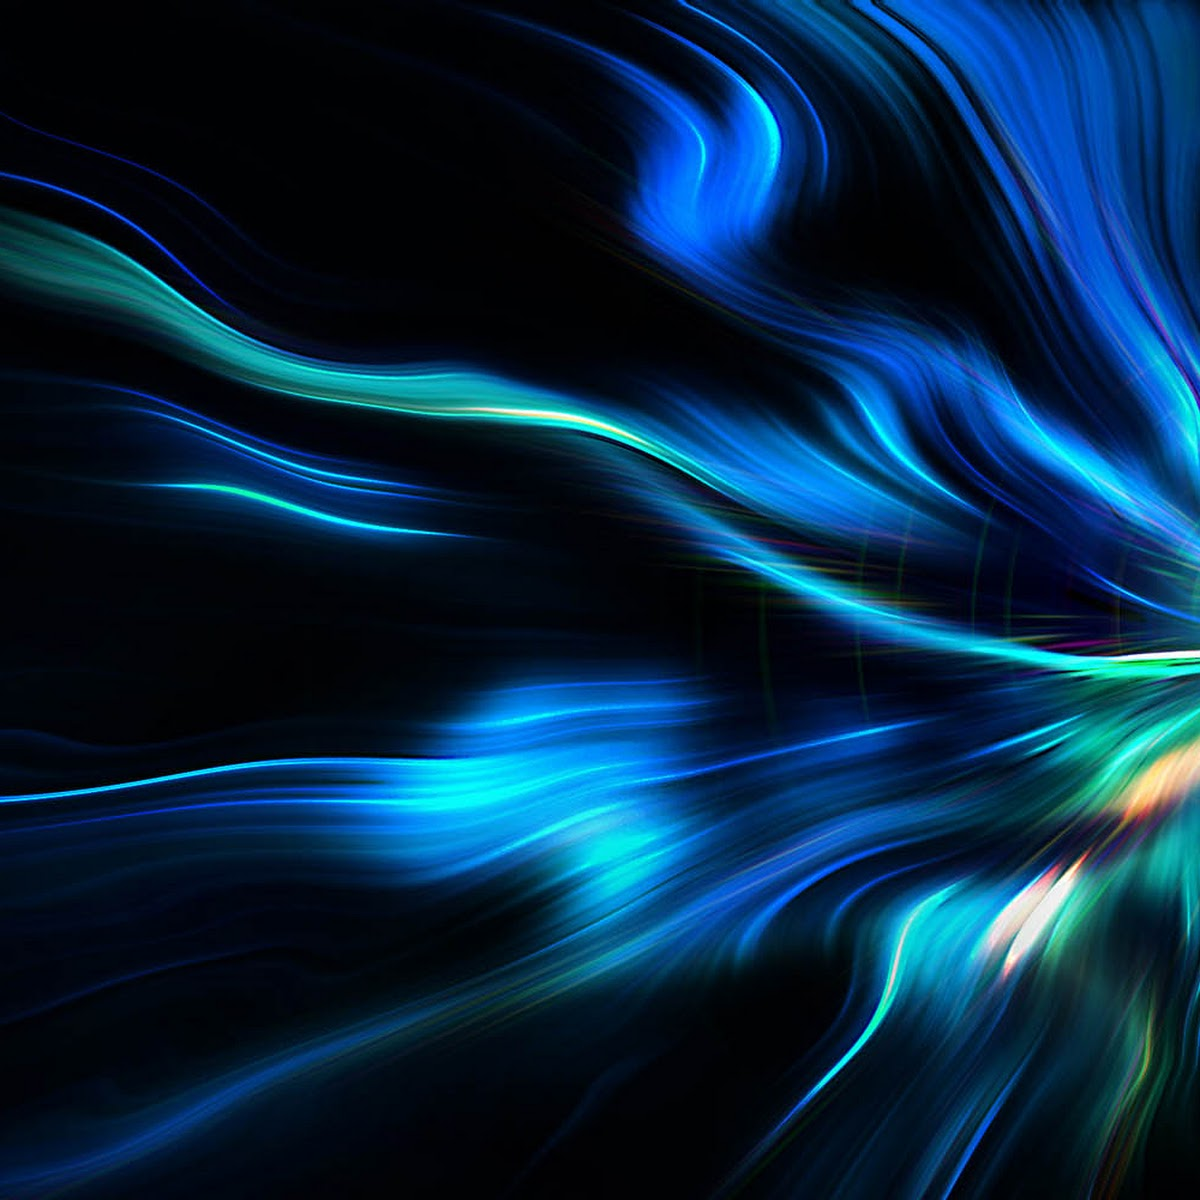 best 3d wallpapers download - wallpapers trends update